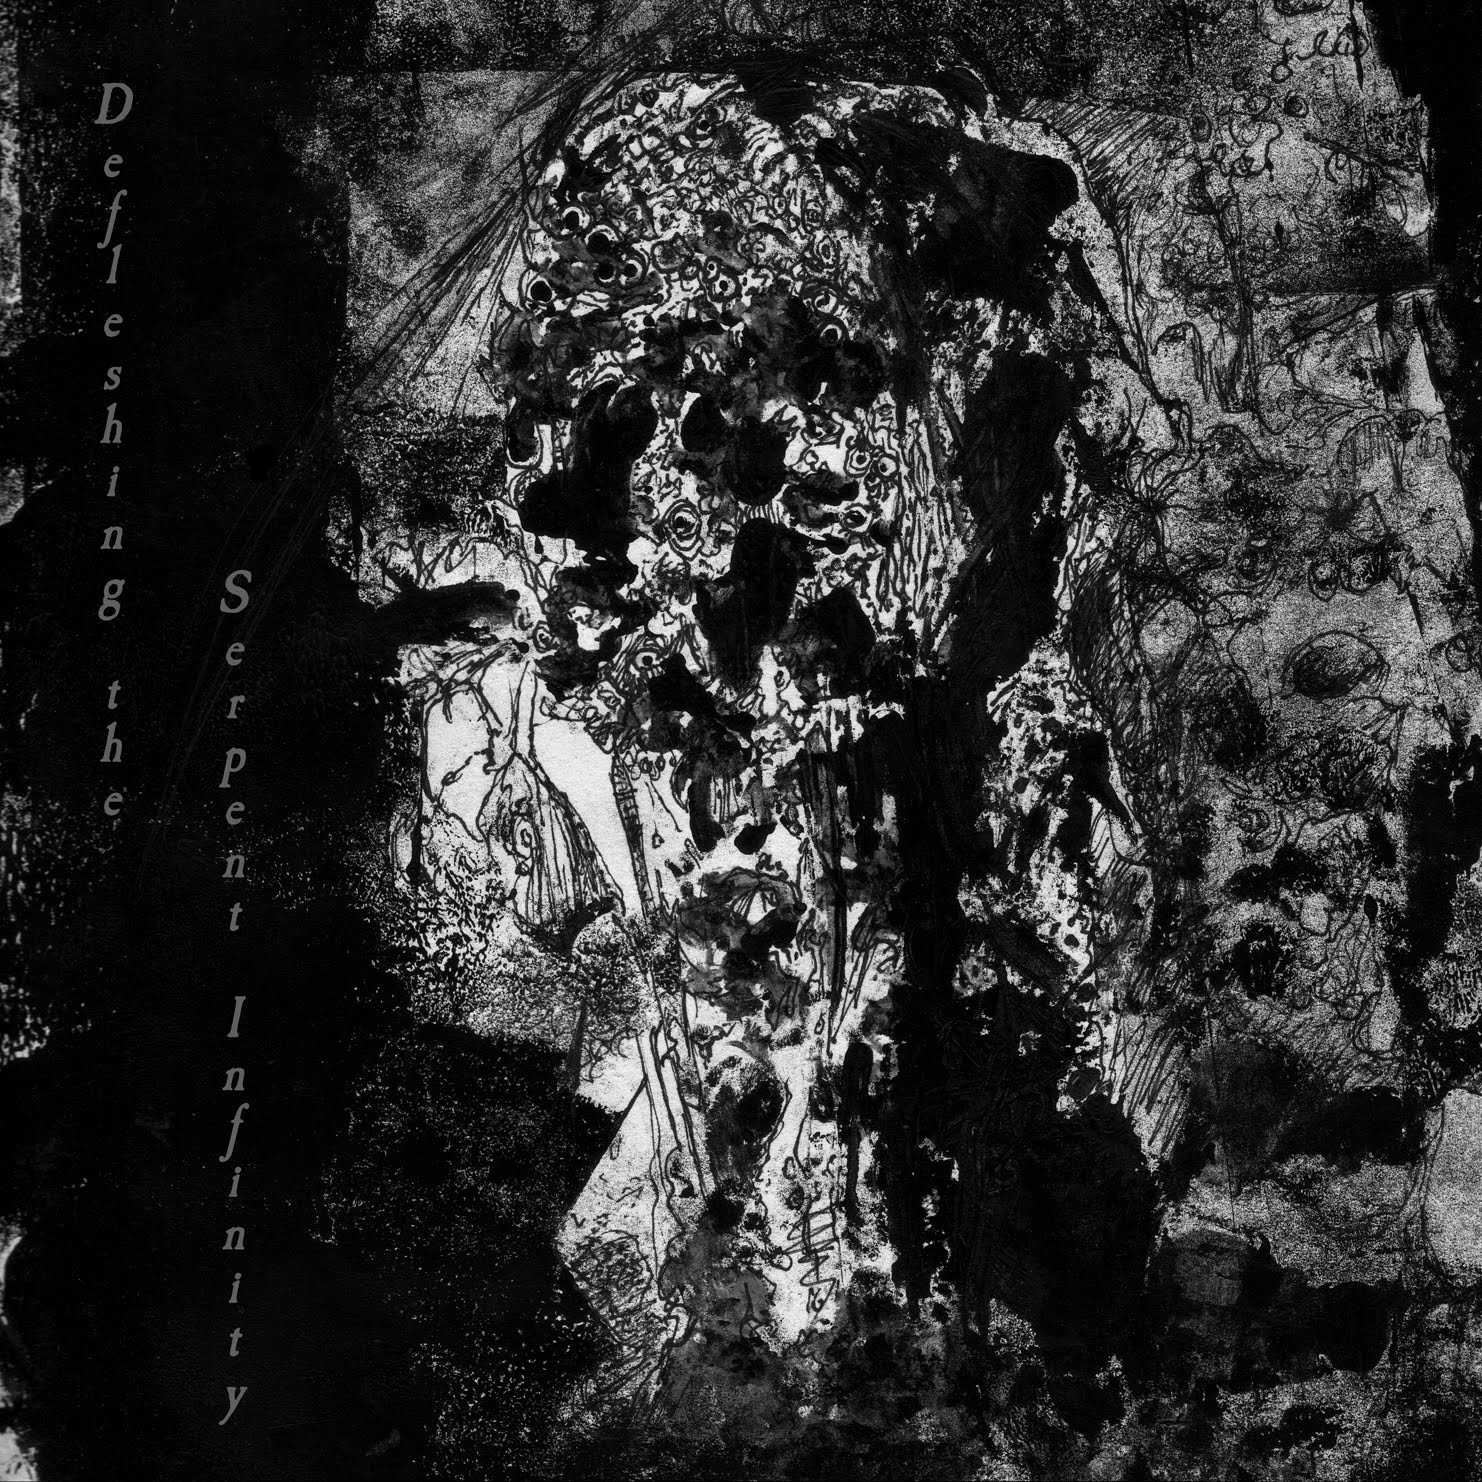 Heresiarch / Antediluvian - Defleshing the Serpent Infinity Press Release.